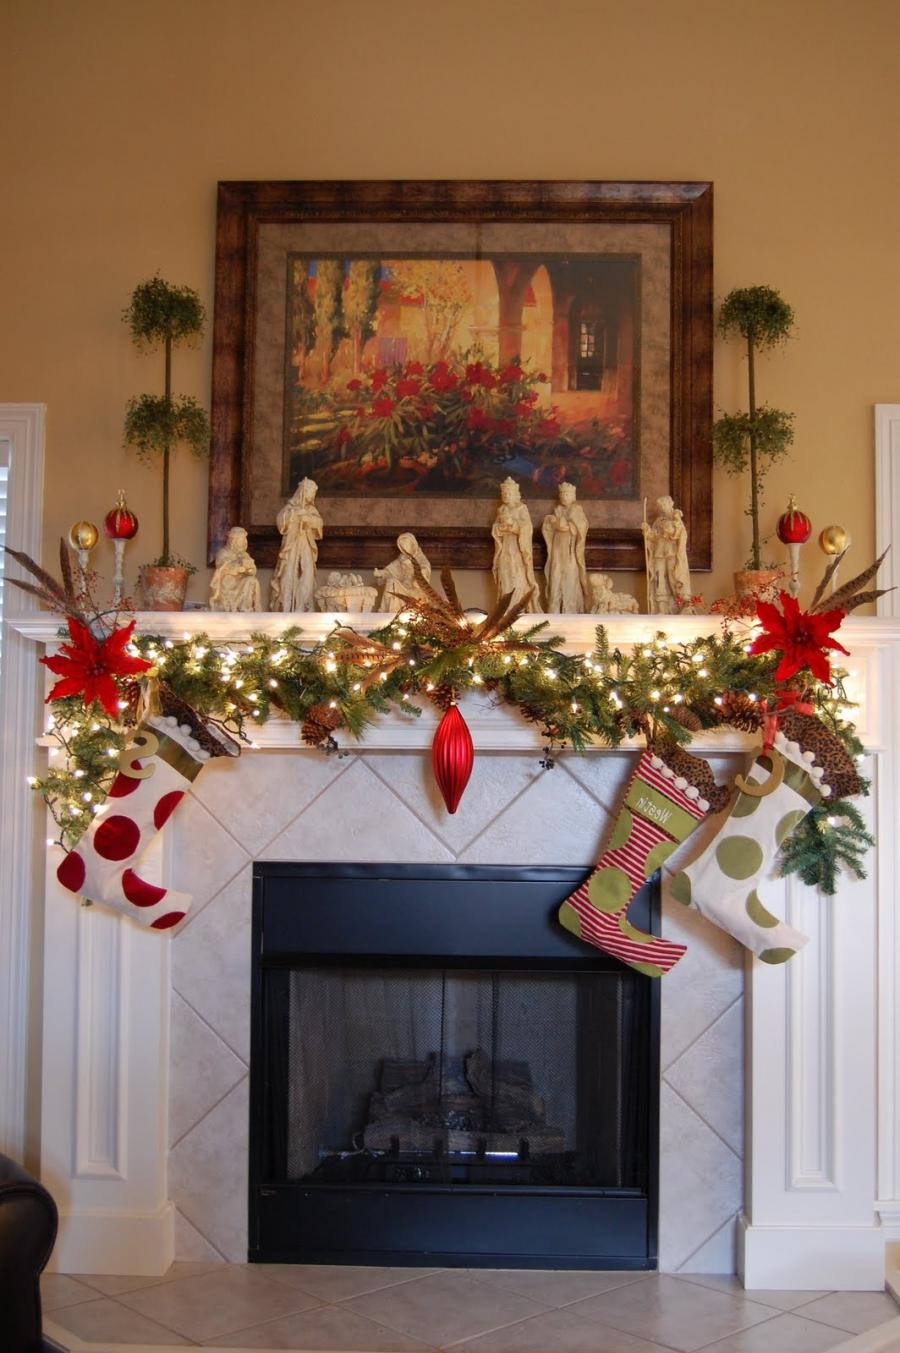 Exceptional Christmas White Fireplace Mantel Decorating from...